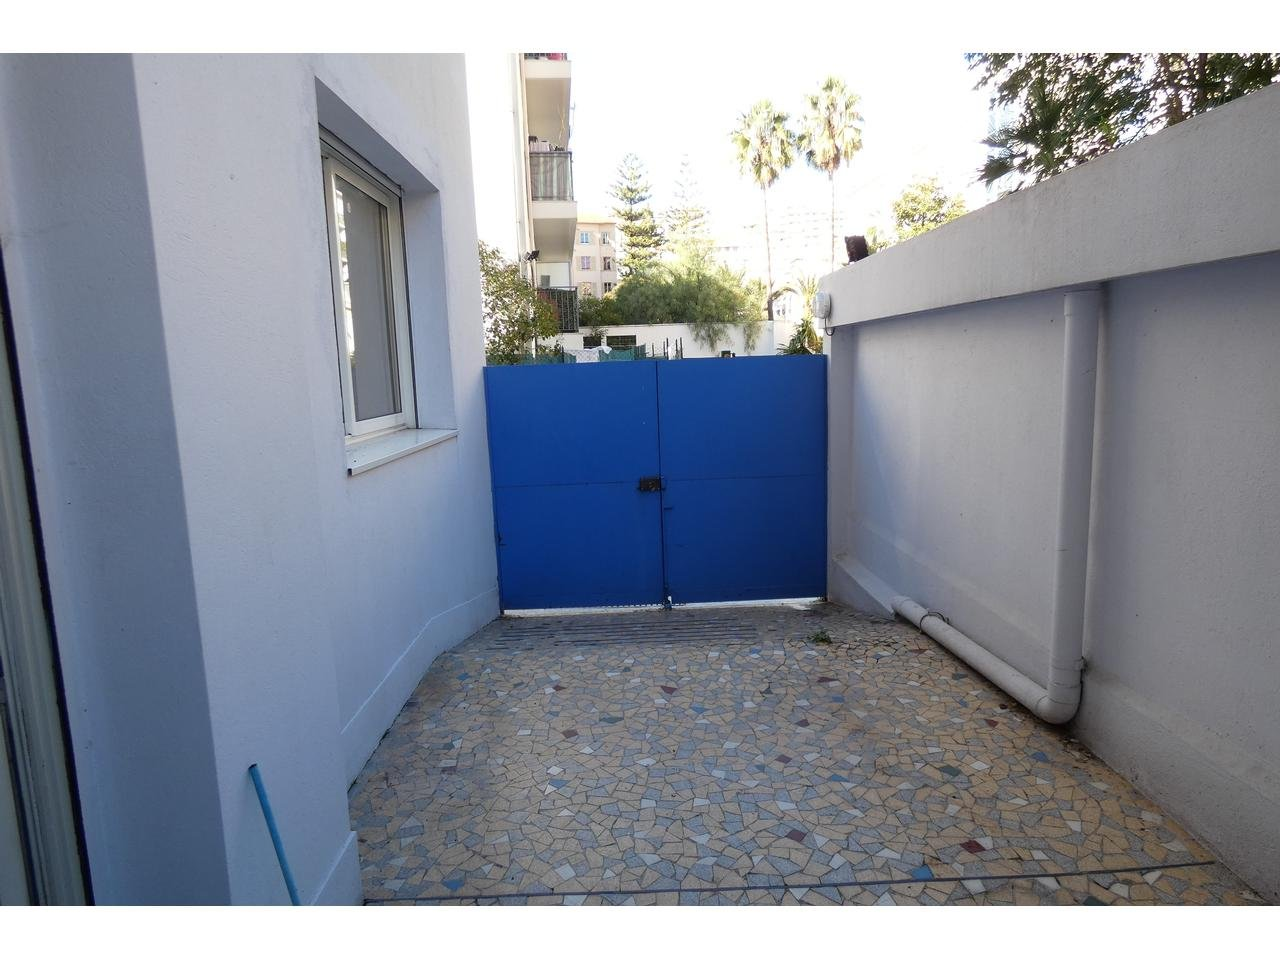 Appartement  2 Rooms 48m2  for sale   255000 €